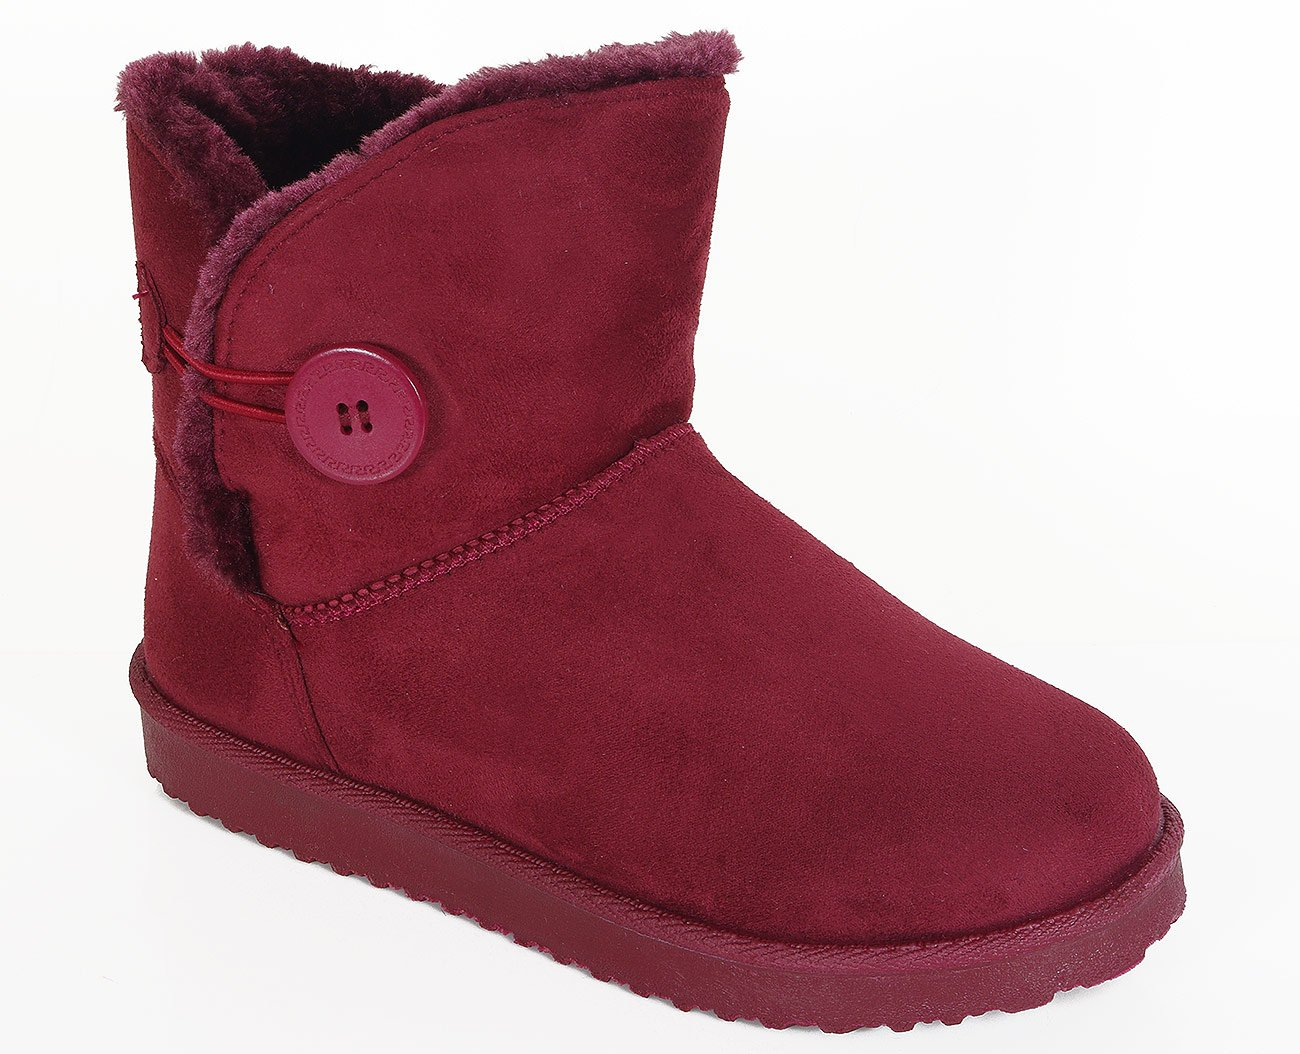 Via Promoda X176 botki dame rose wine red